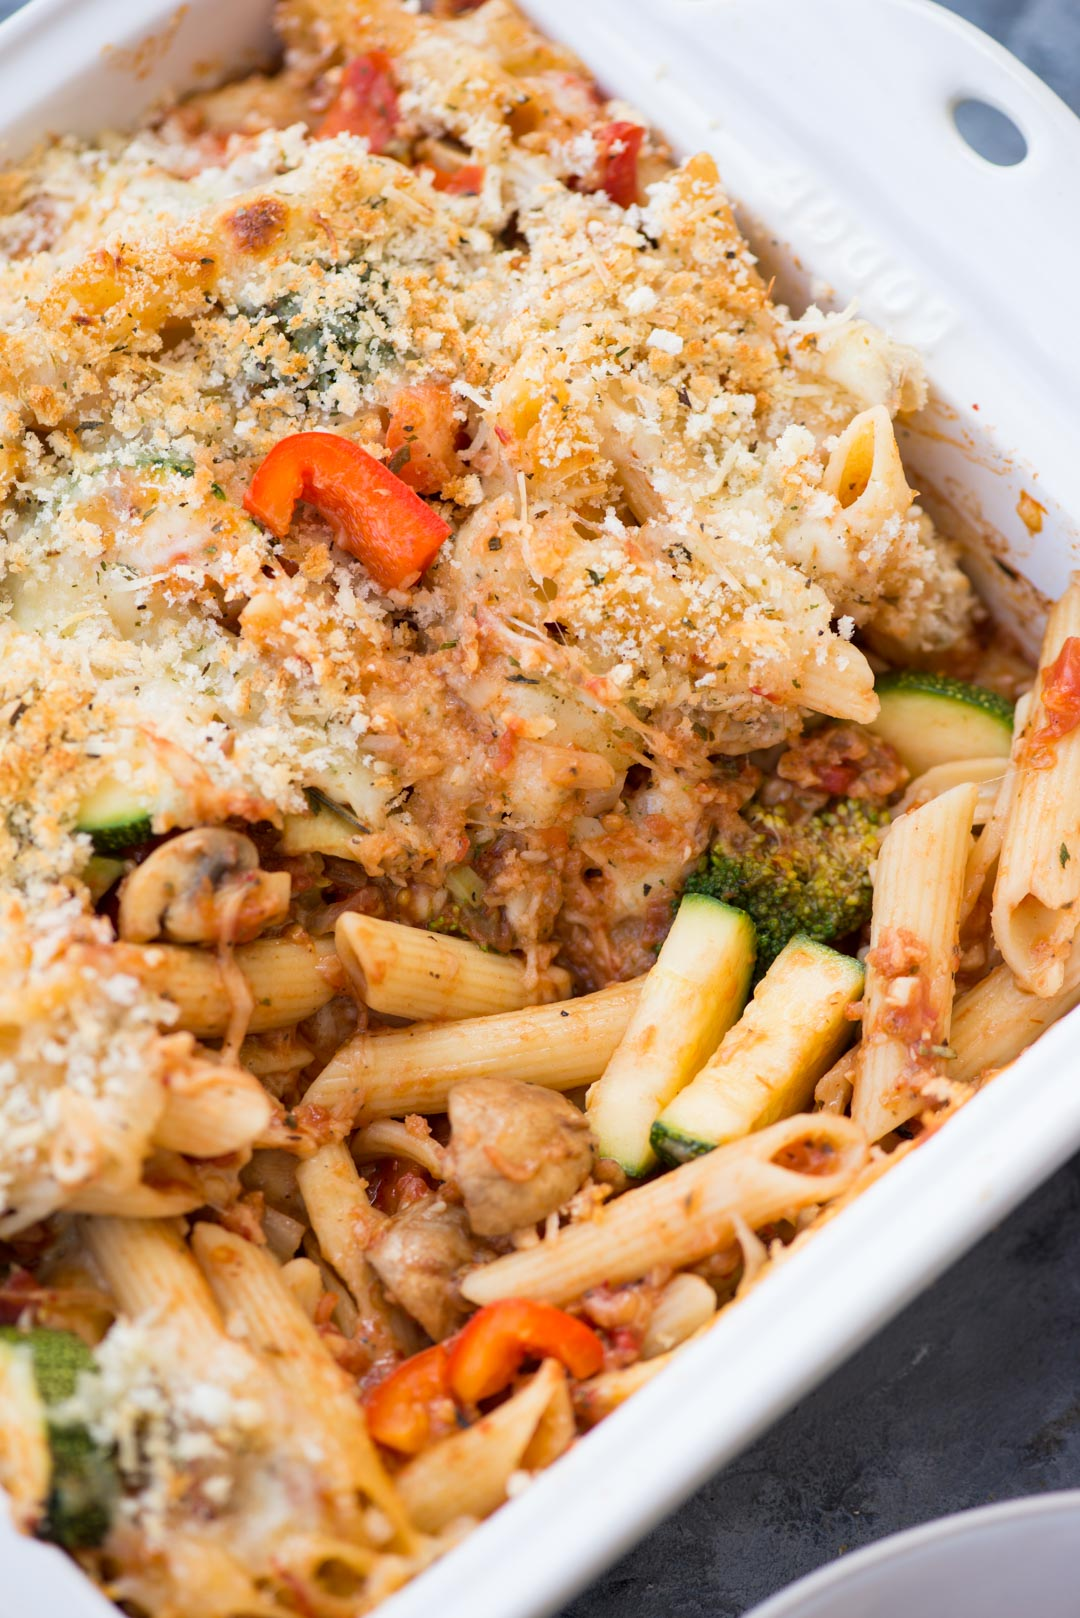 This Easy Vegetable Pasta bake is loaded with Vegetables, has a Chessy Sauce and takes less than 30 minutes to make. A perfect weeknight meal or to serve a crowd.